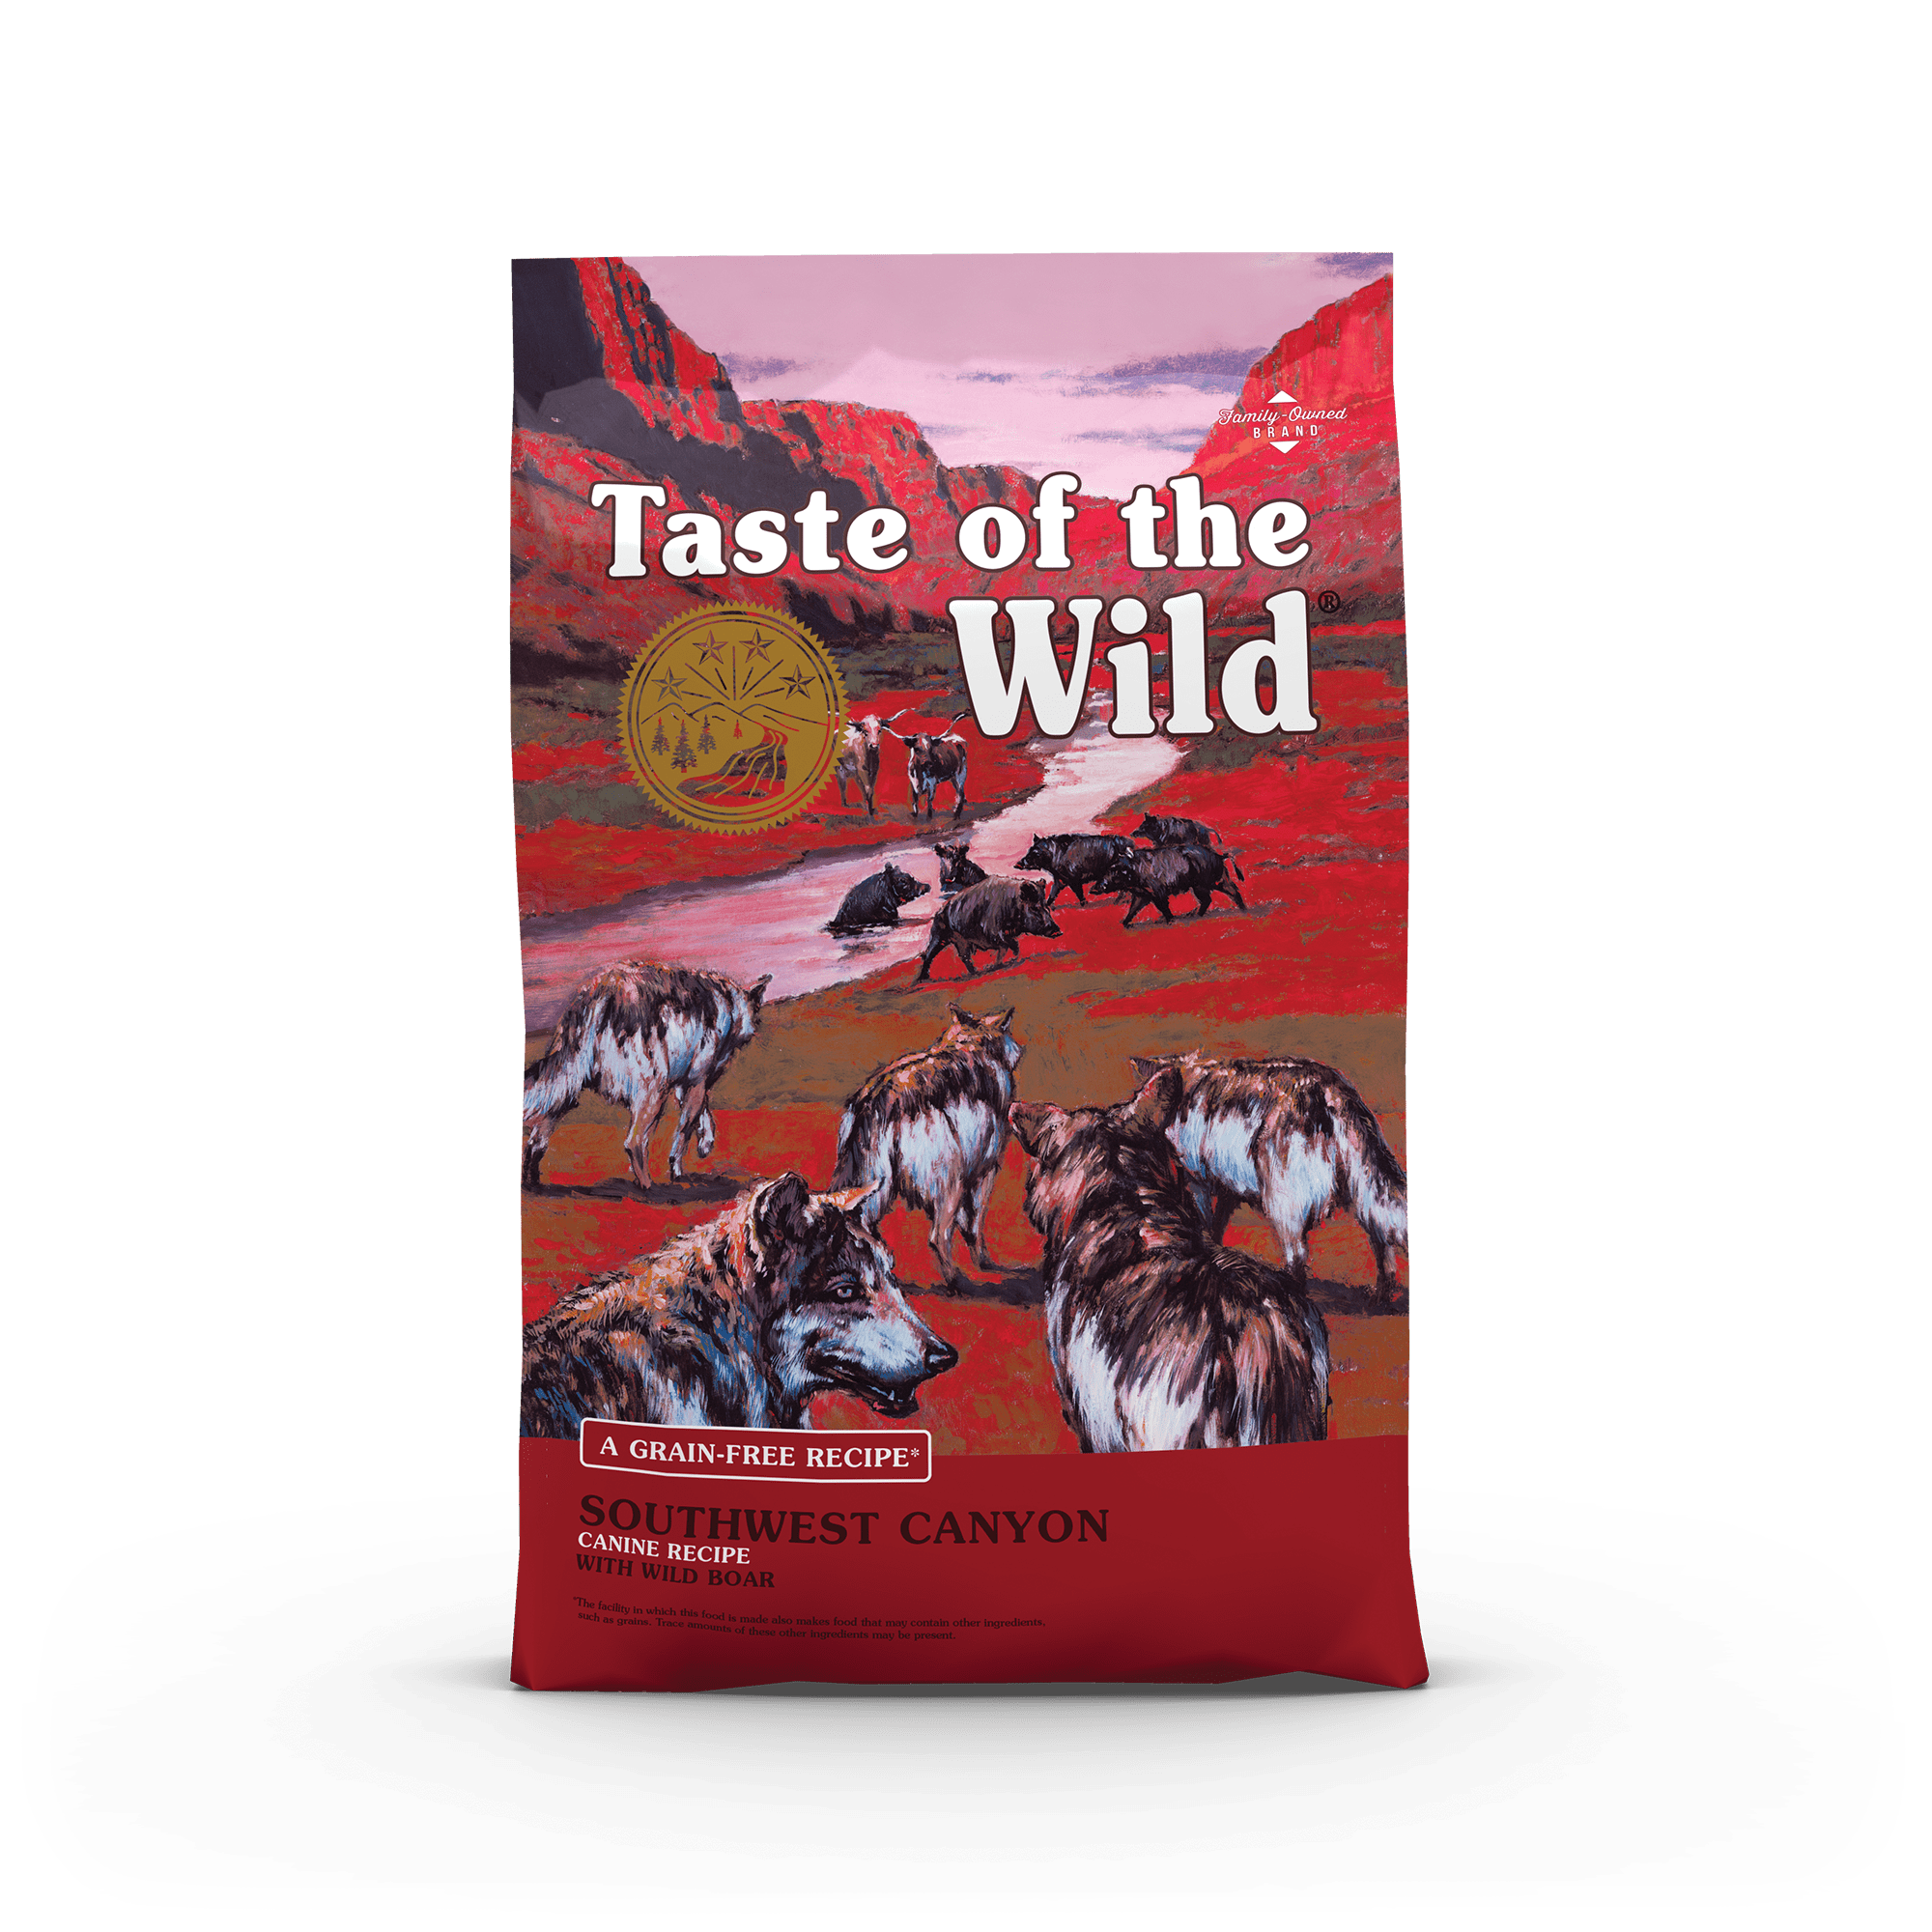 Taste of the Wild  Southwest Canyon Canine Recipe